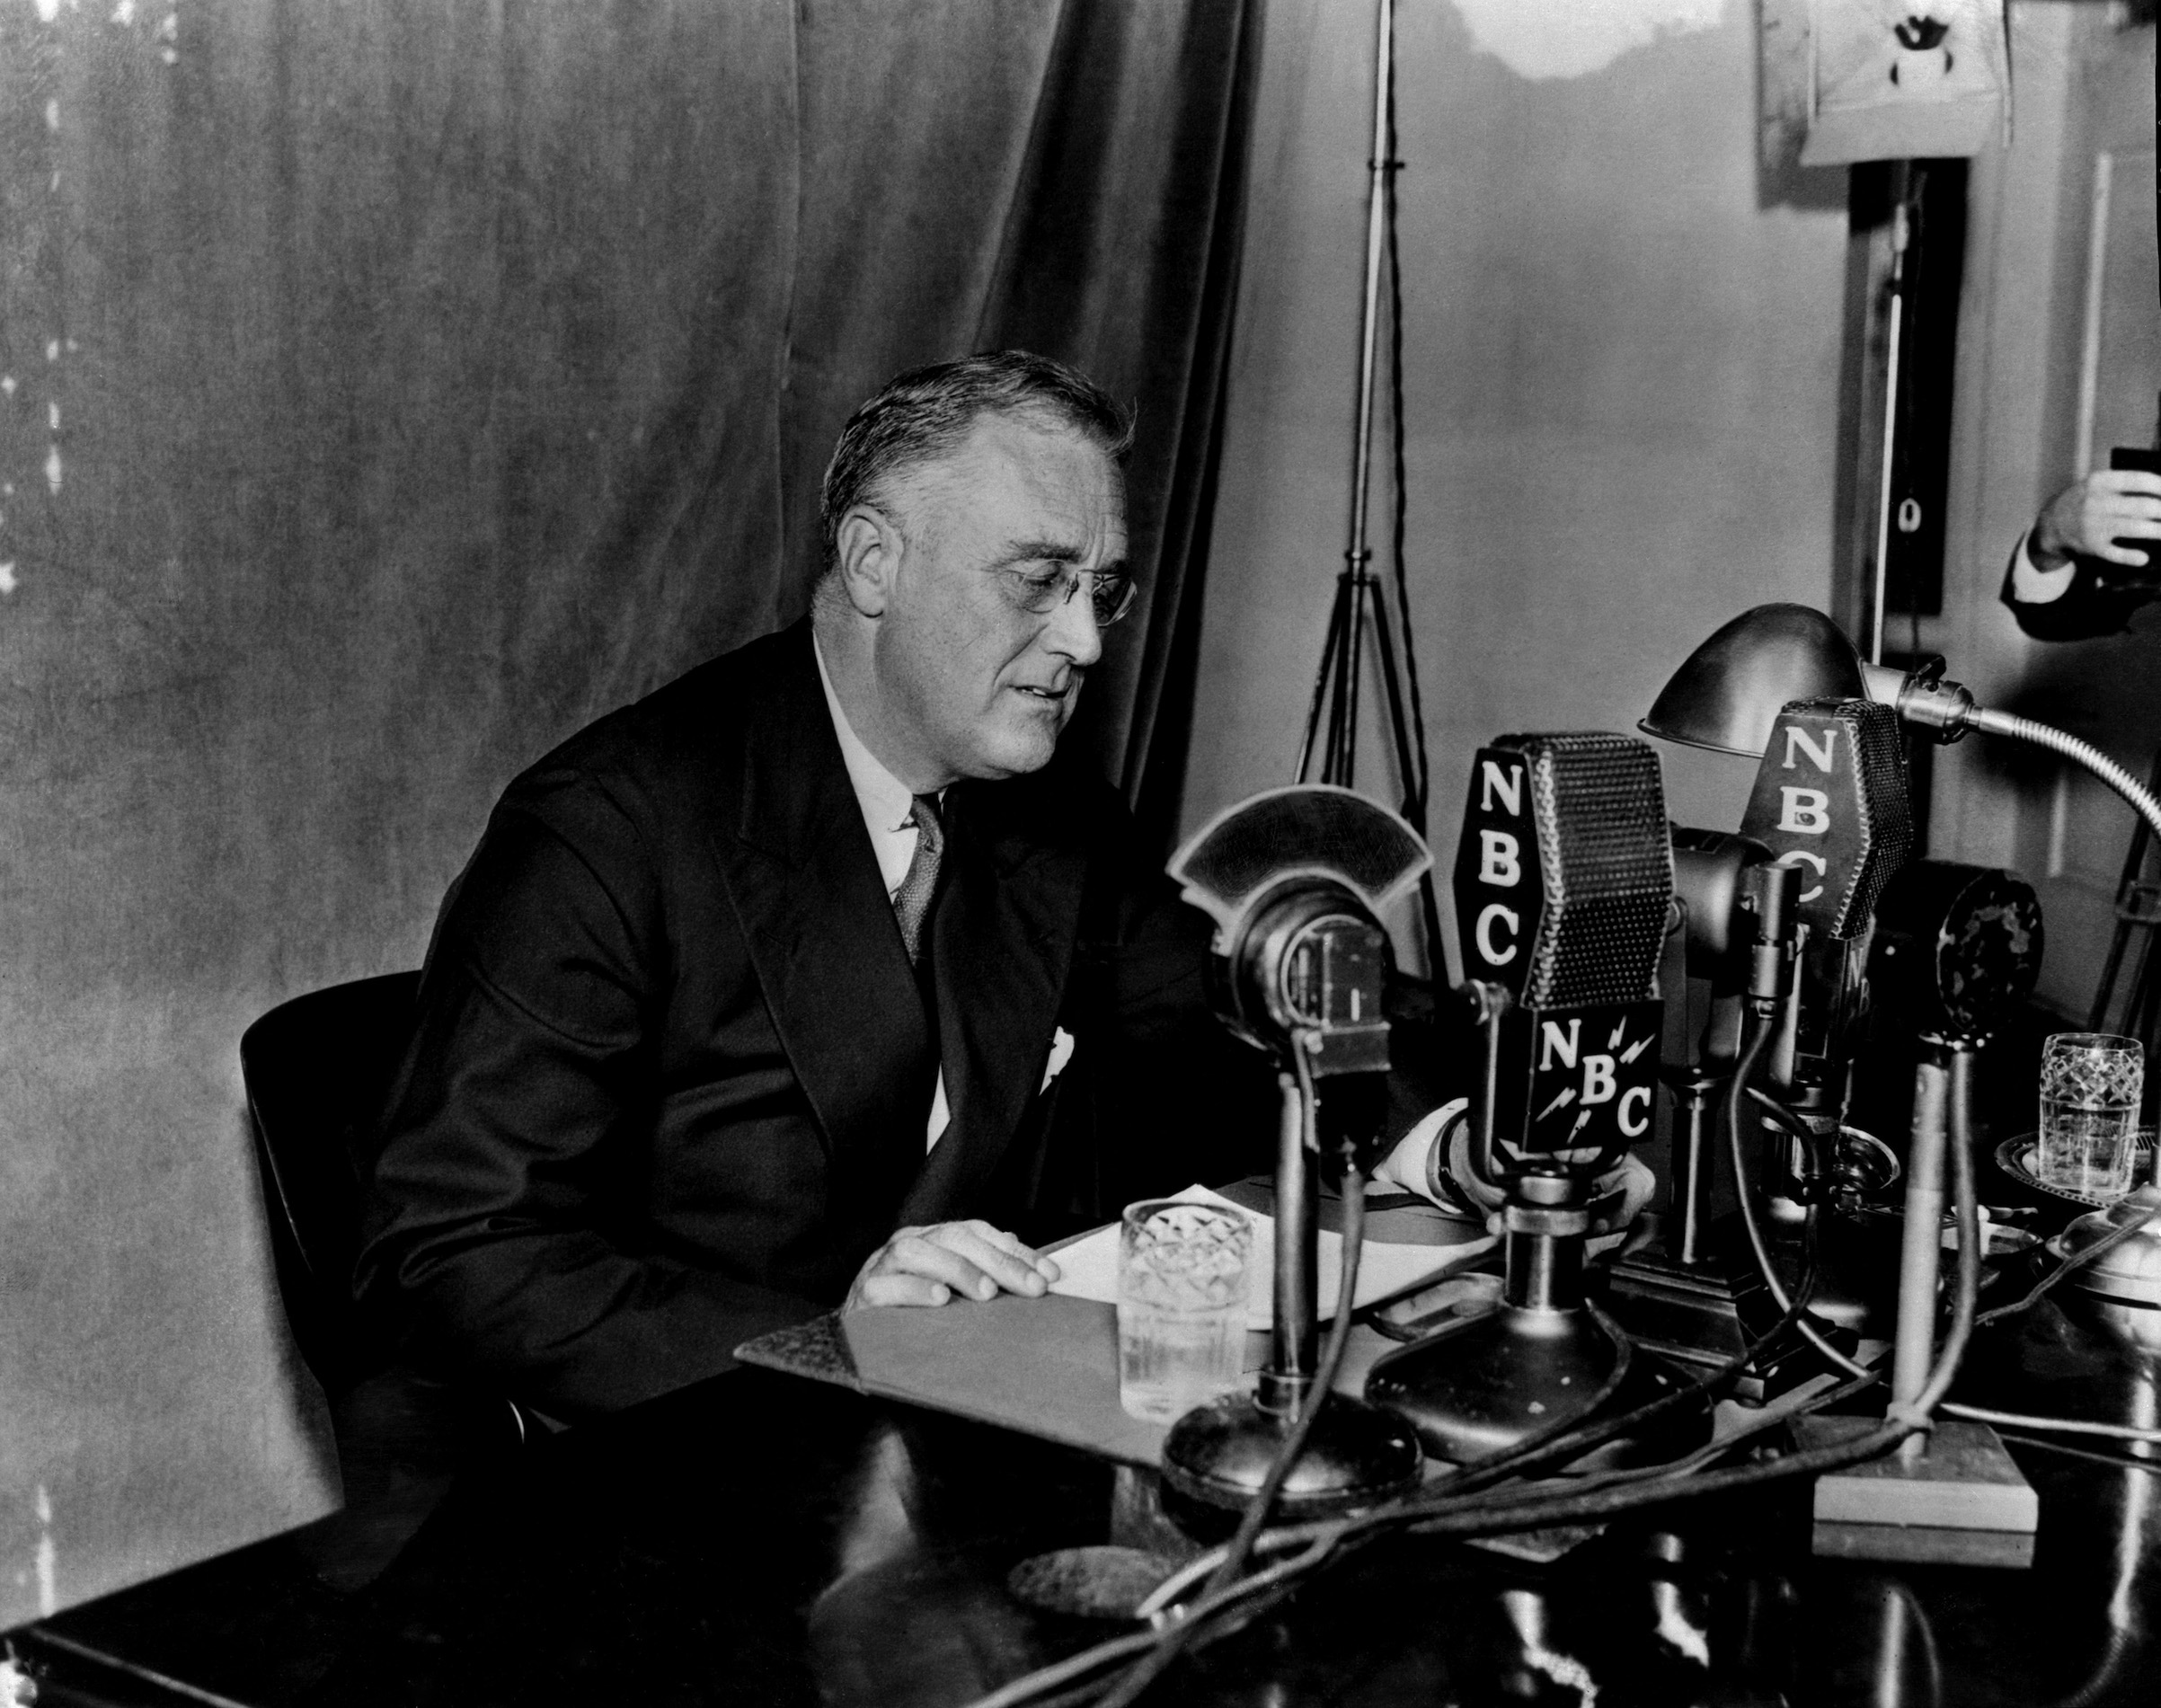 President Franklin D. Roosevelt during one of his  fireside chats  broadcasted on NBC Radio